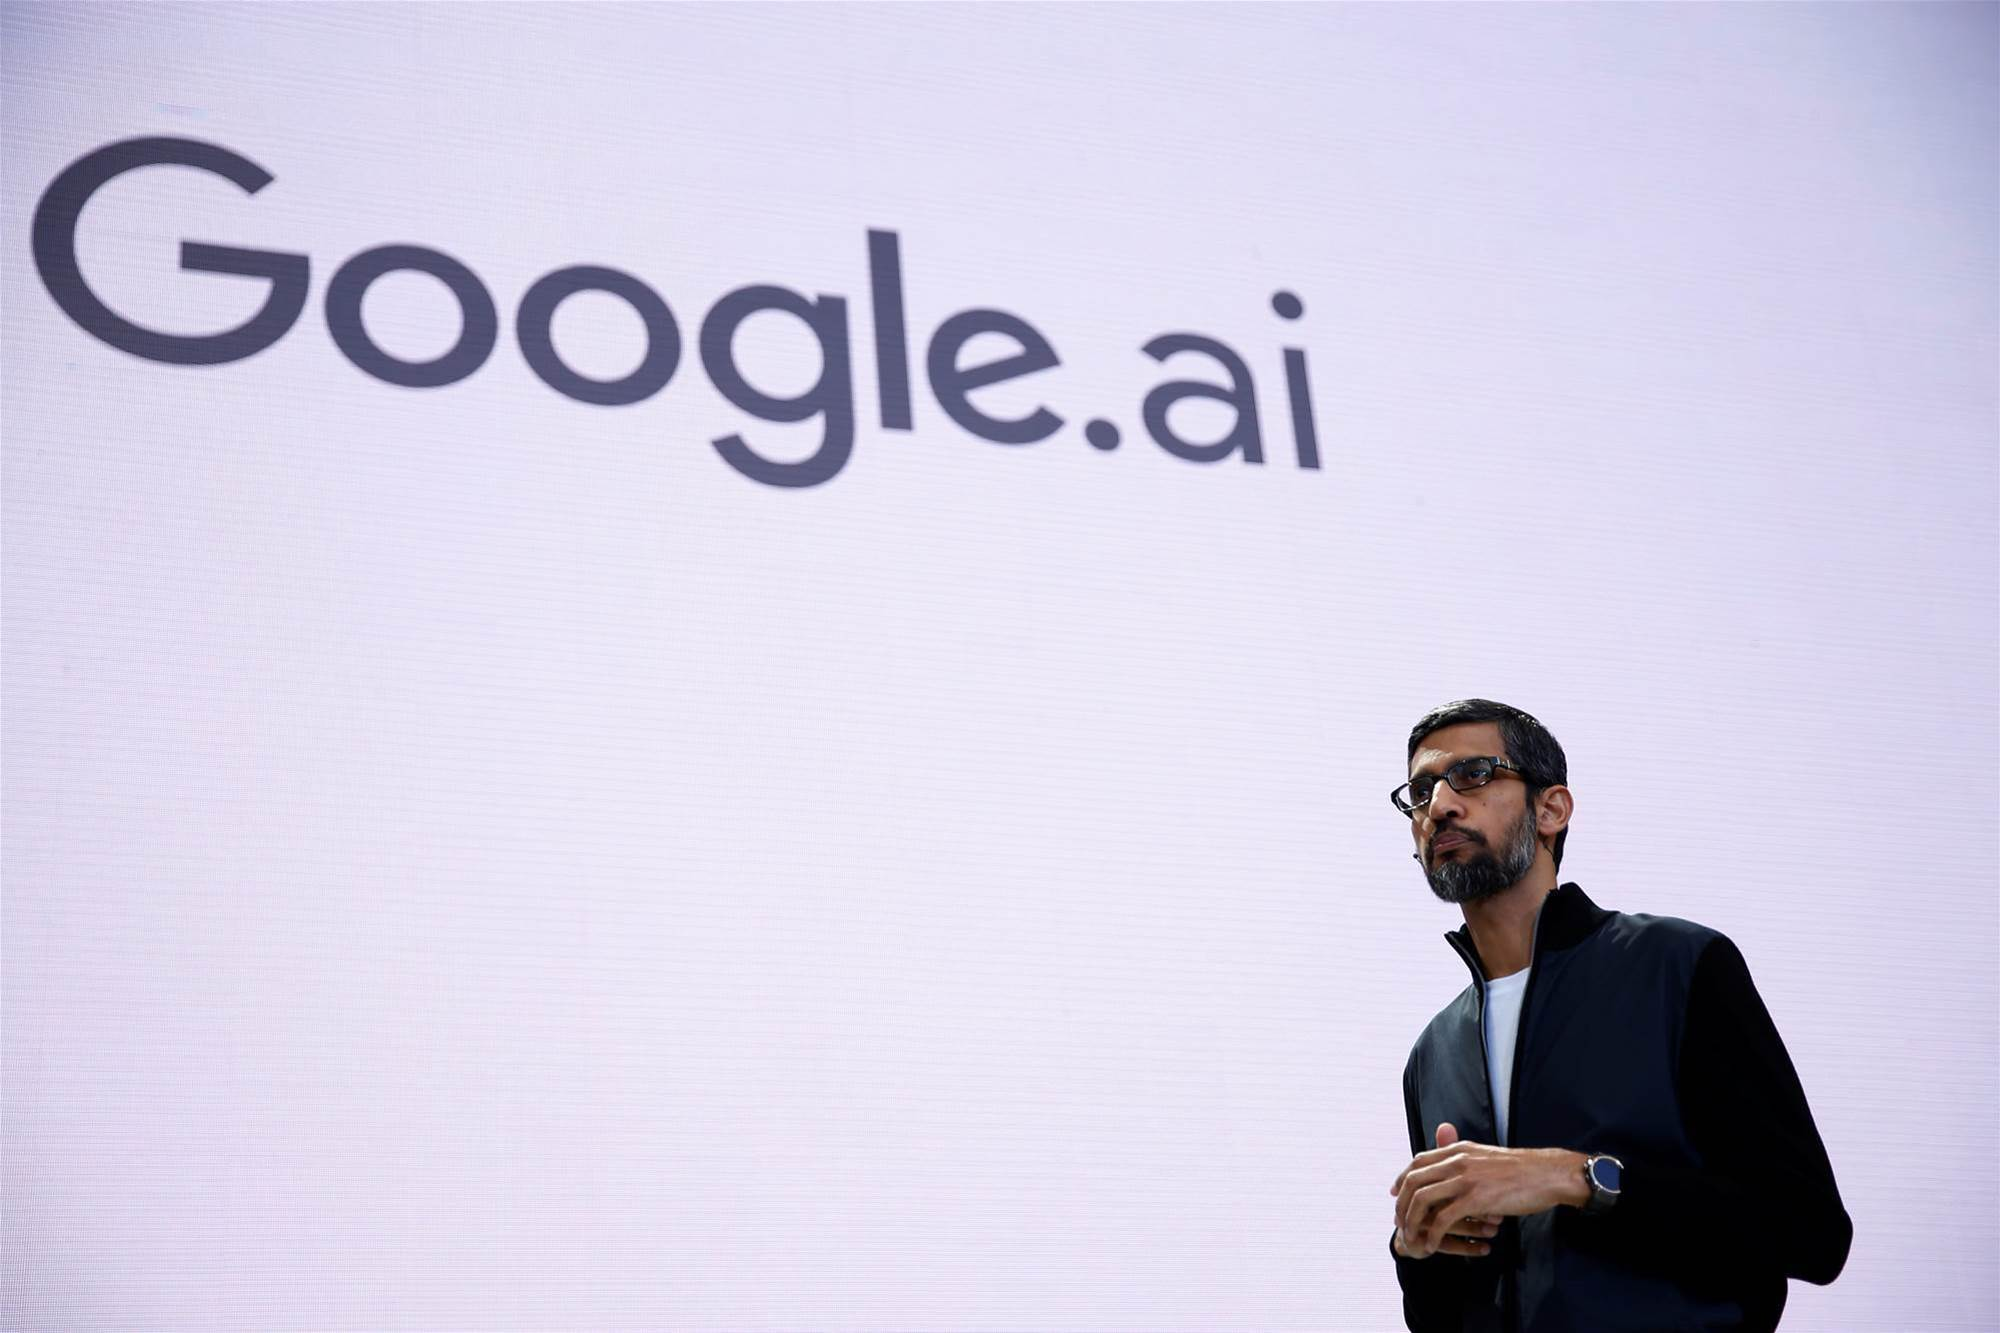 Google shifts focus to apps and AI for mobile